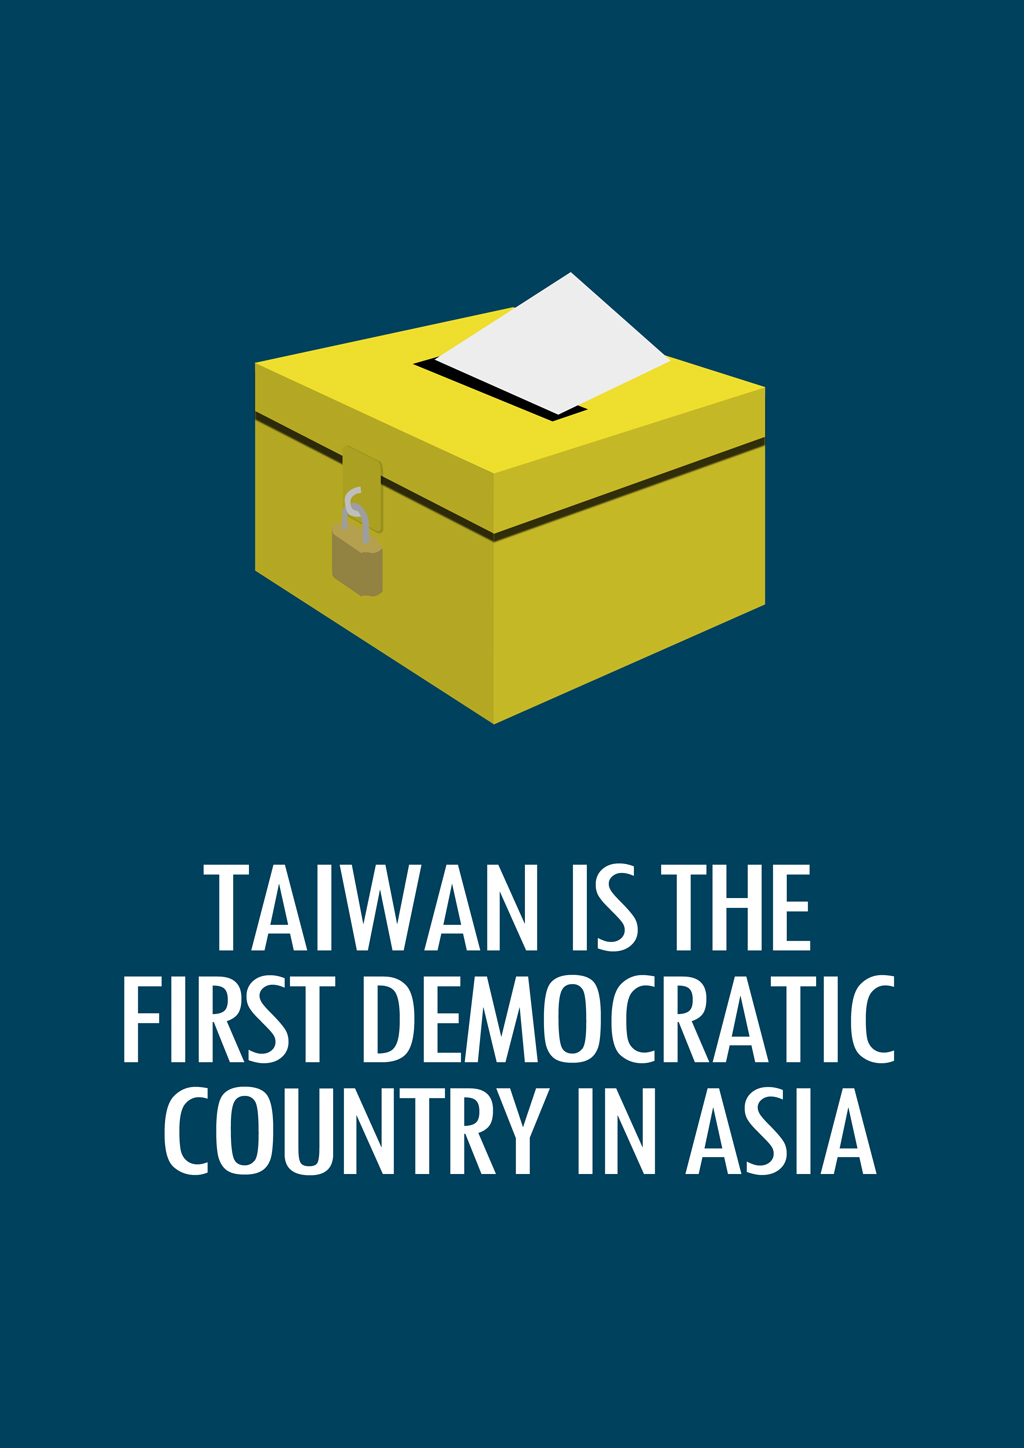 Taiwan First Democracy in Asia